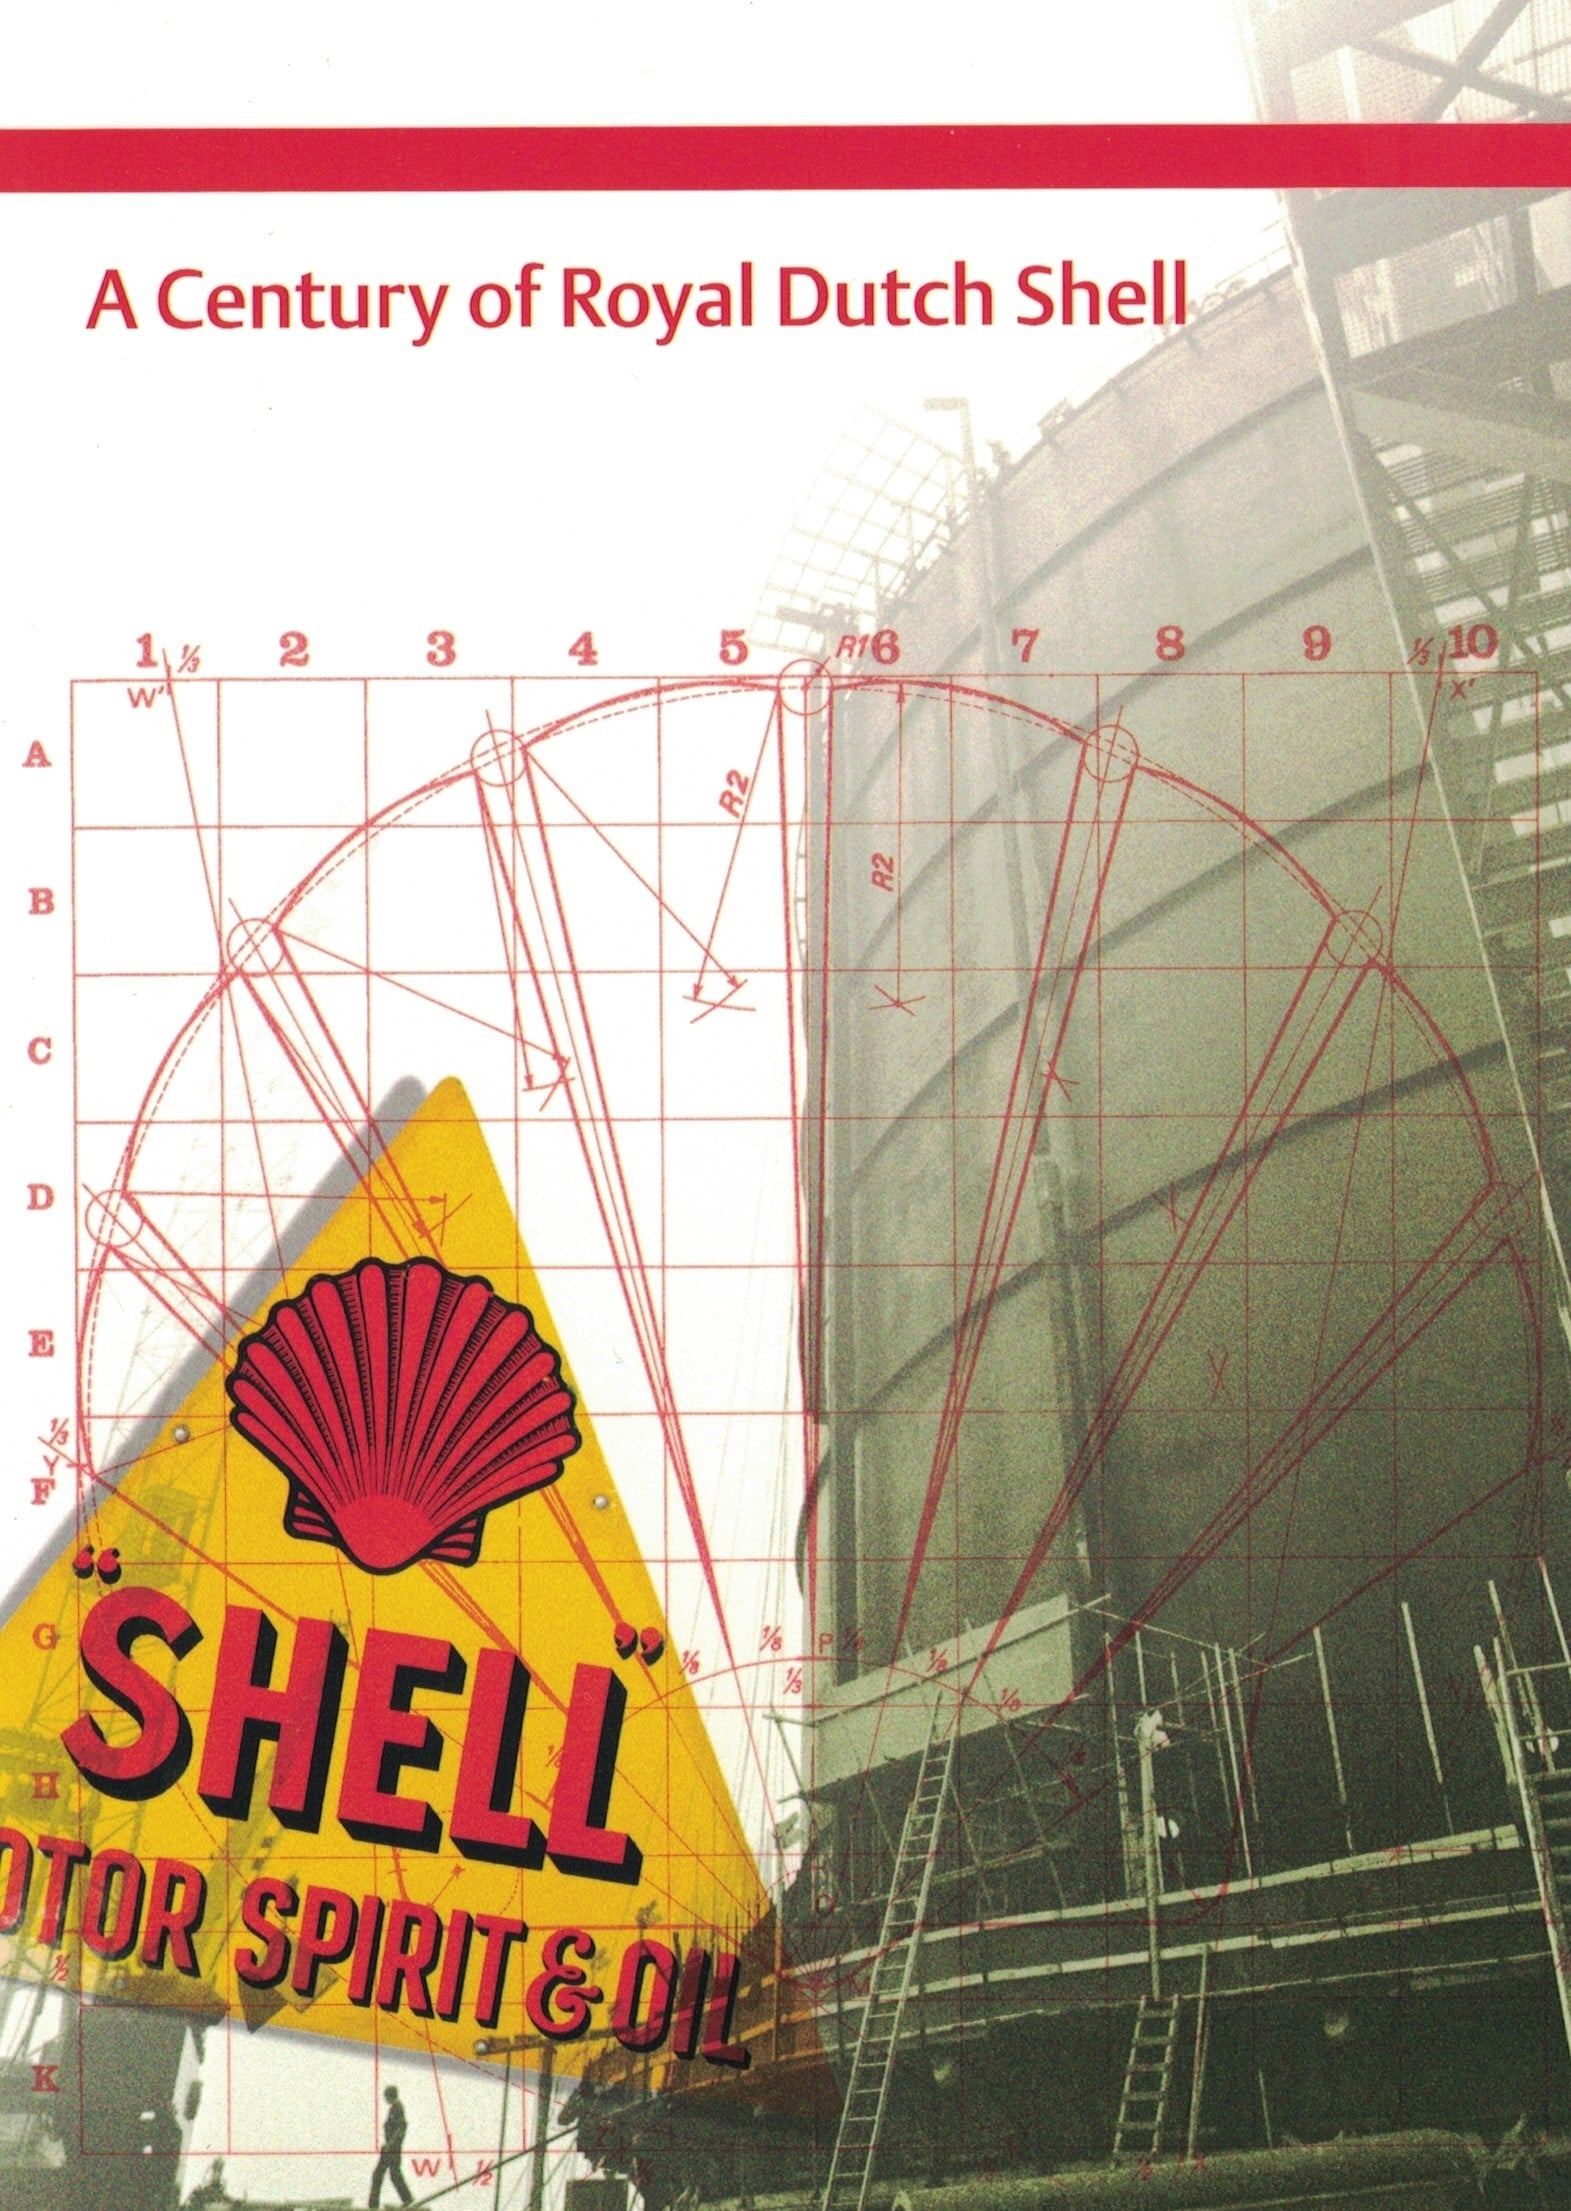 A Century of Royal Dutch Shell (1970)